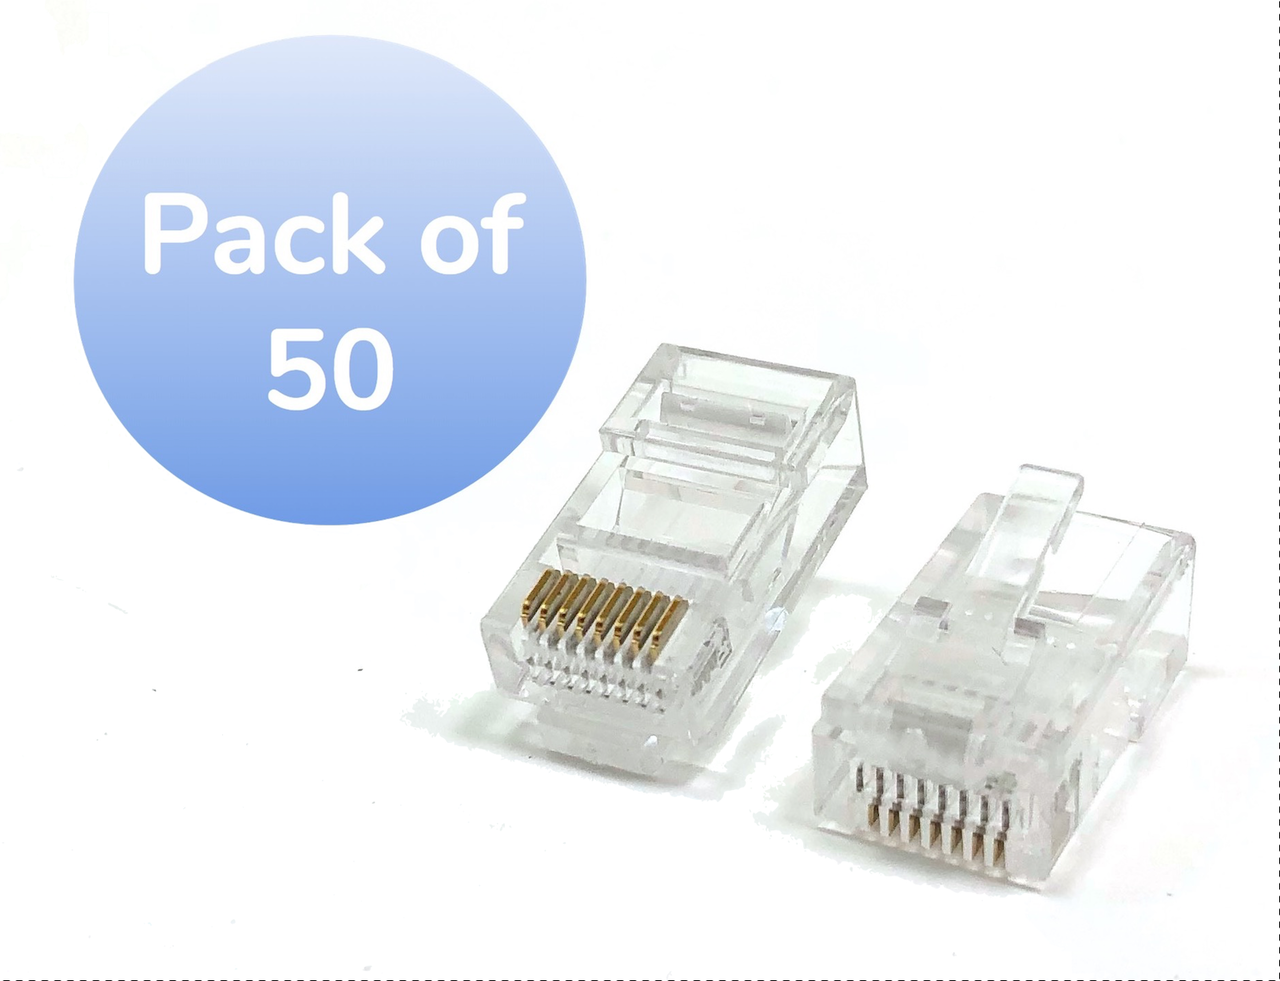 Category 5 Rj45 Modular Connector 50 Pack Micro Connectors Inc Cat 5e Bootless Cables Cat5e Yellow Ethernet Patch Cable